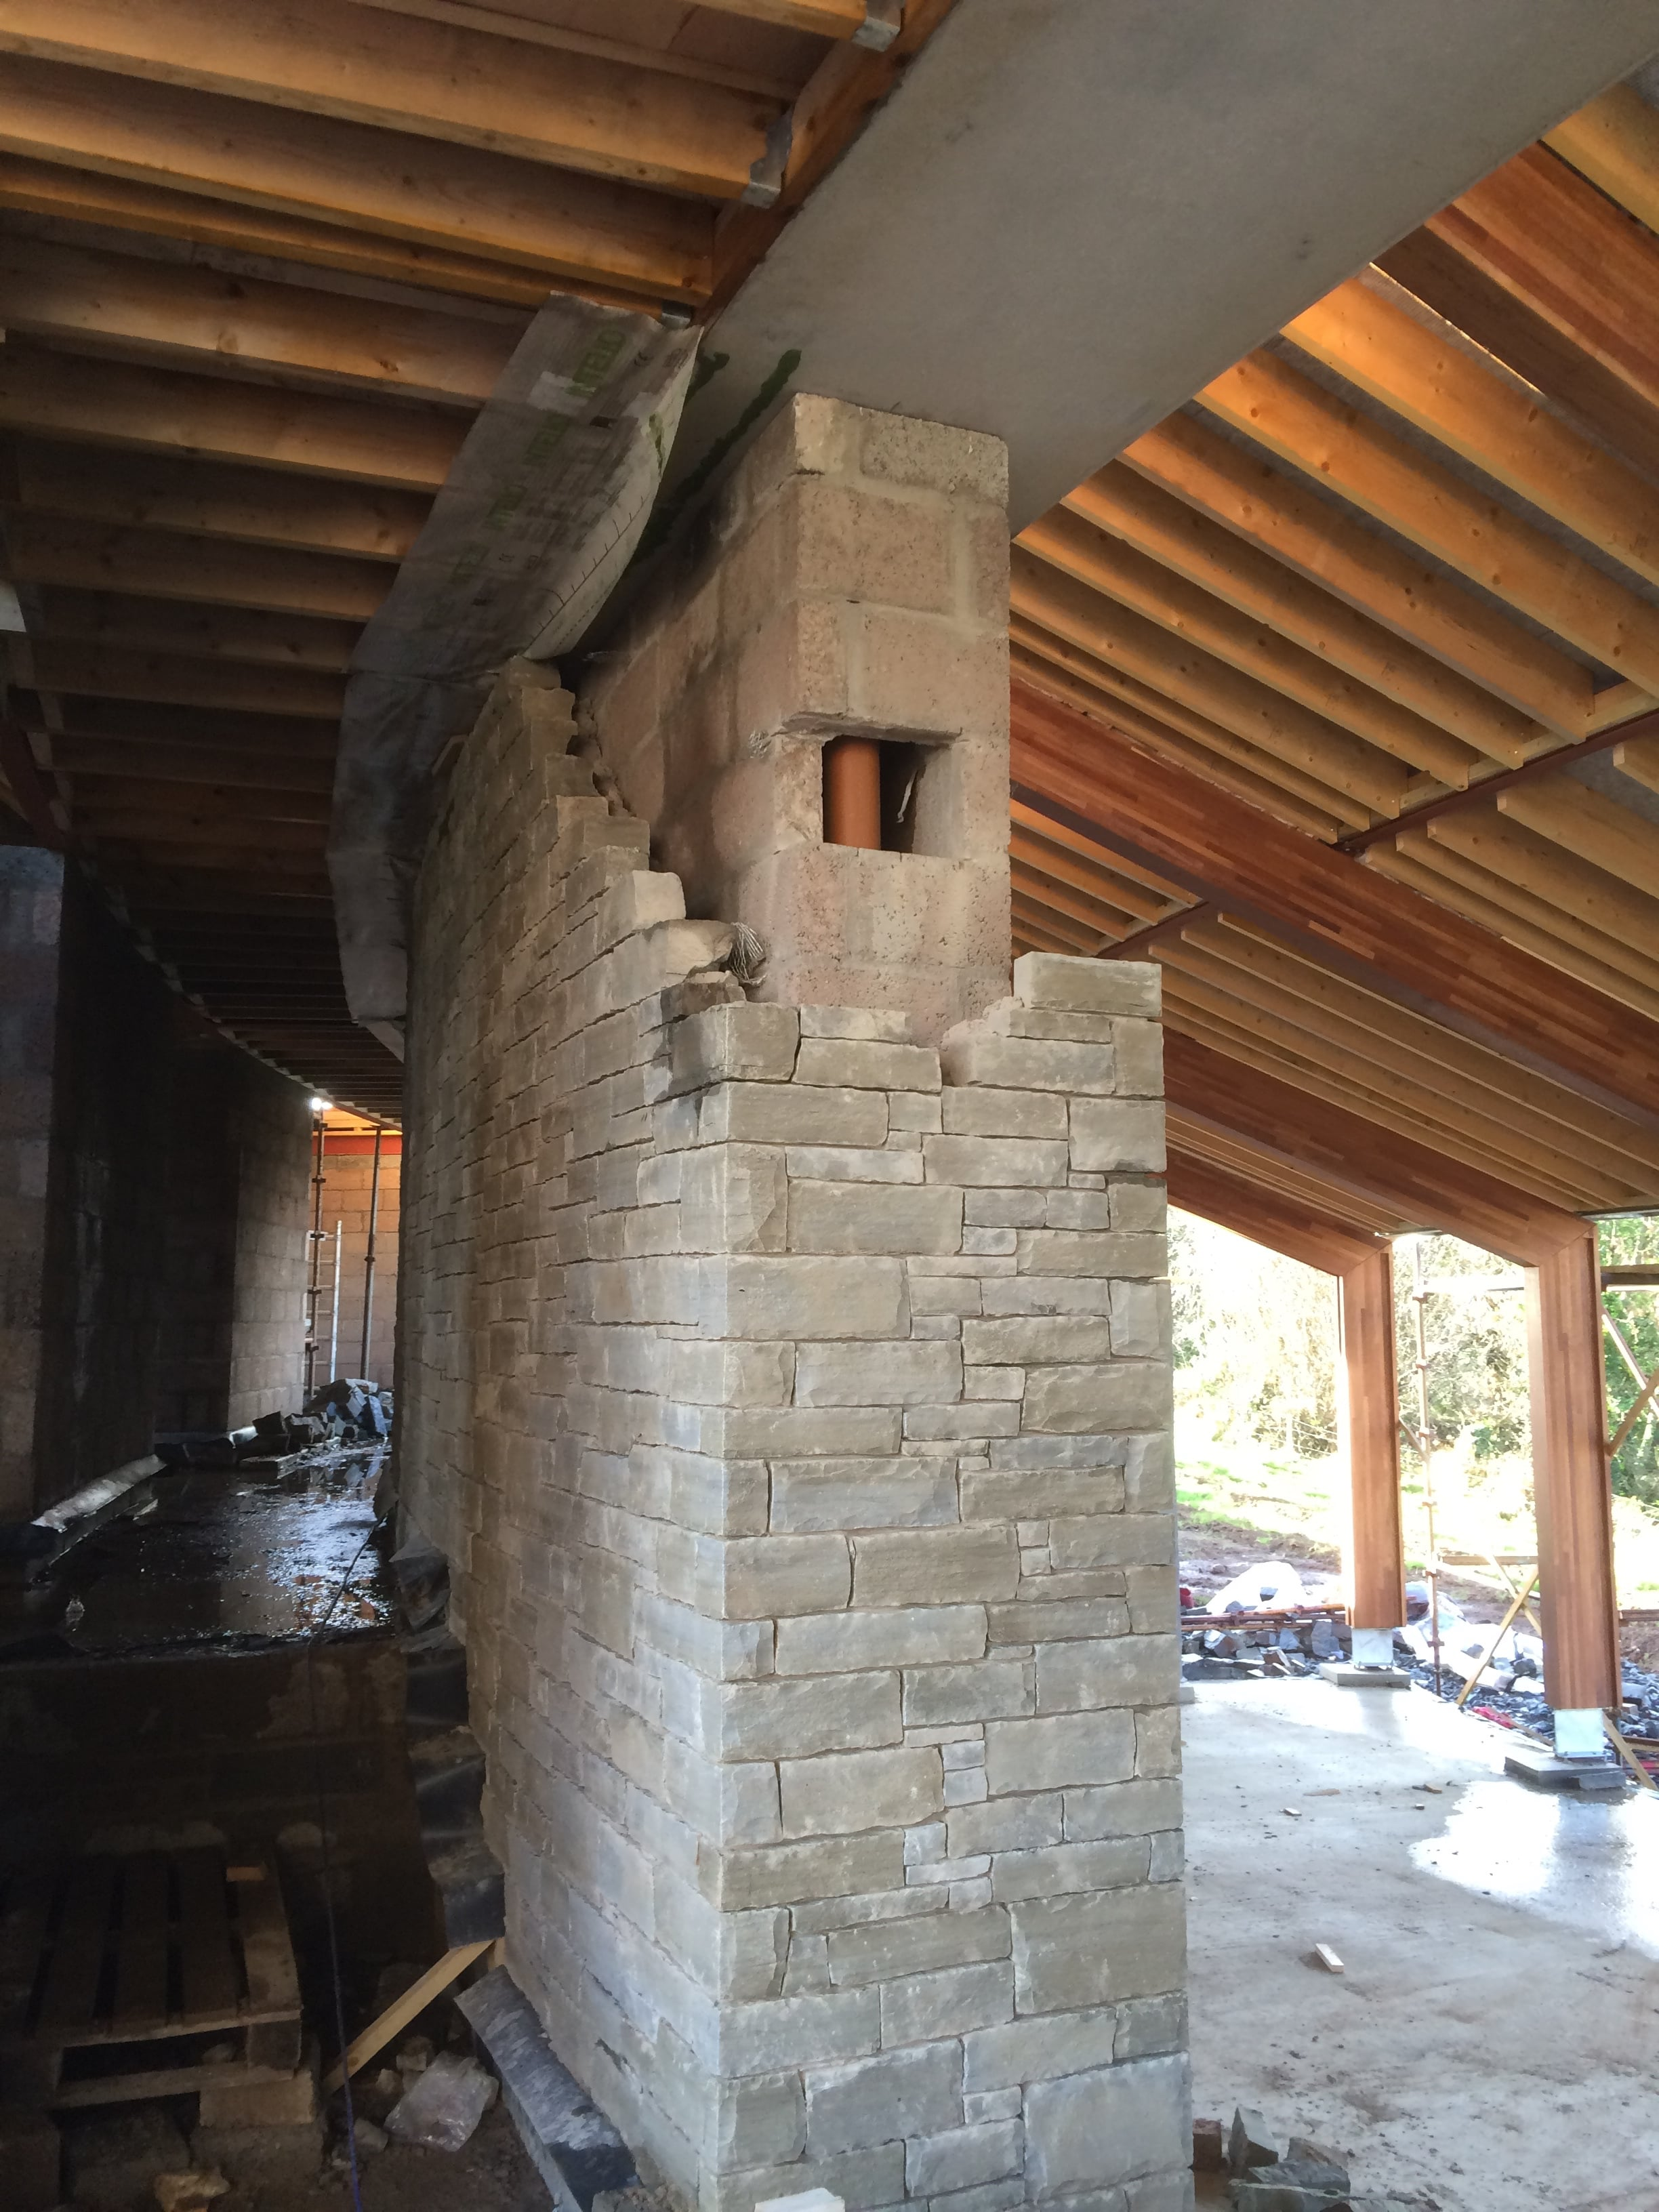 Internal stone work nearing completion